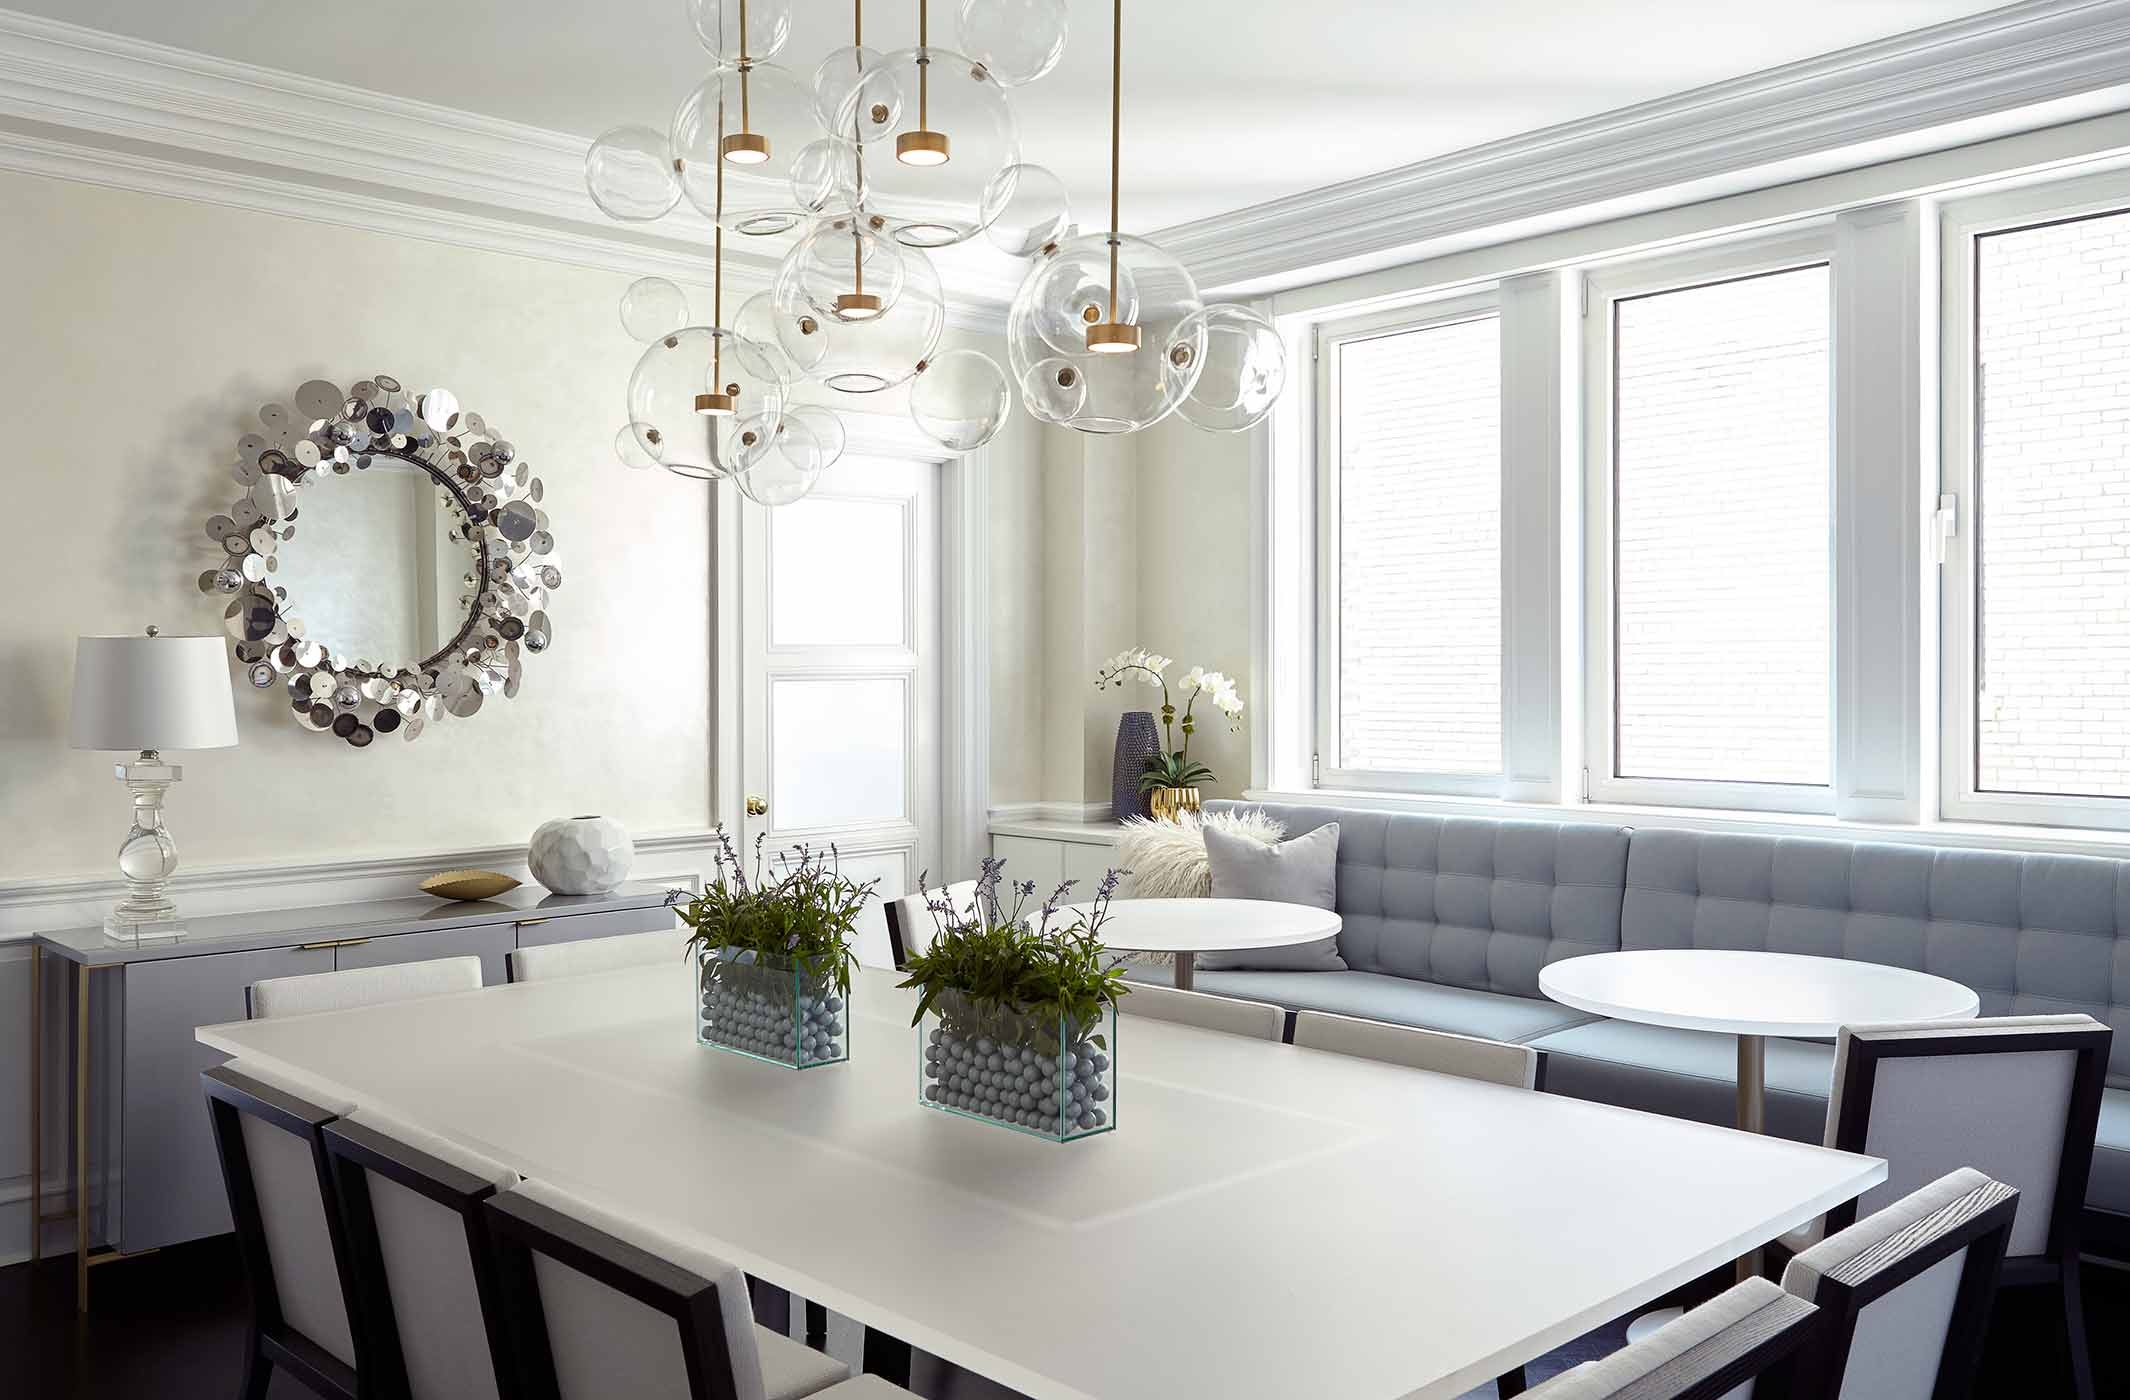 NYC dining area with custom made multi-bubble chandelier, banquette seating and bistro tables